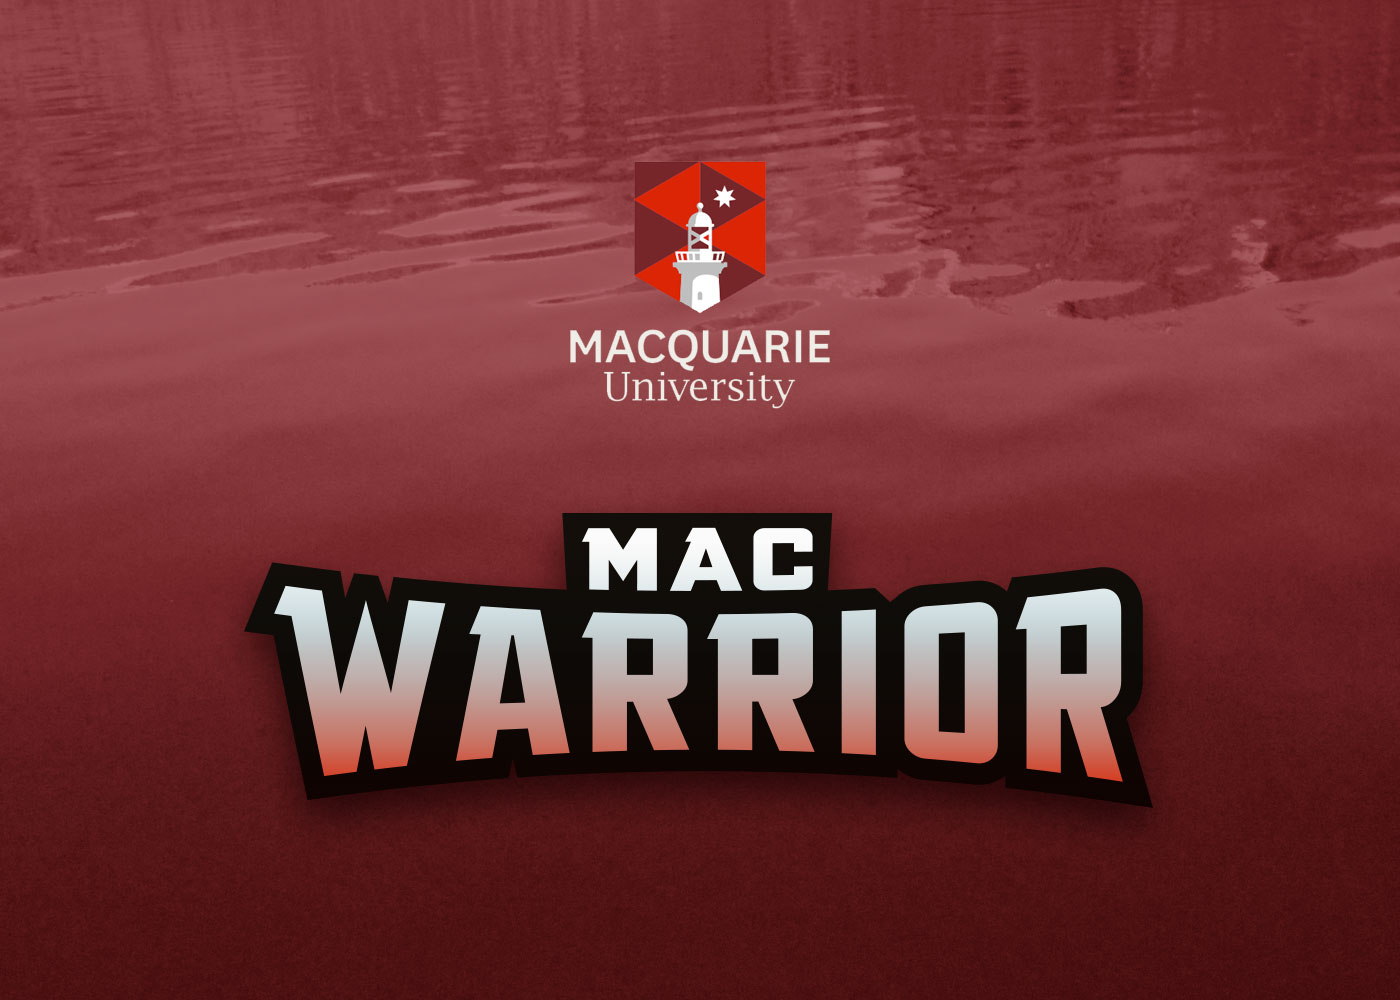 MAC-WARRIOR_WebPage_01